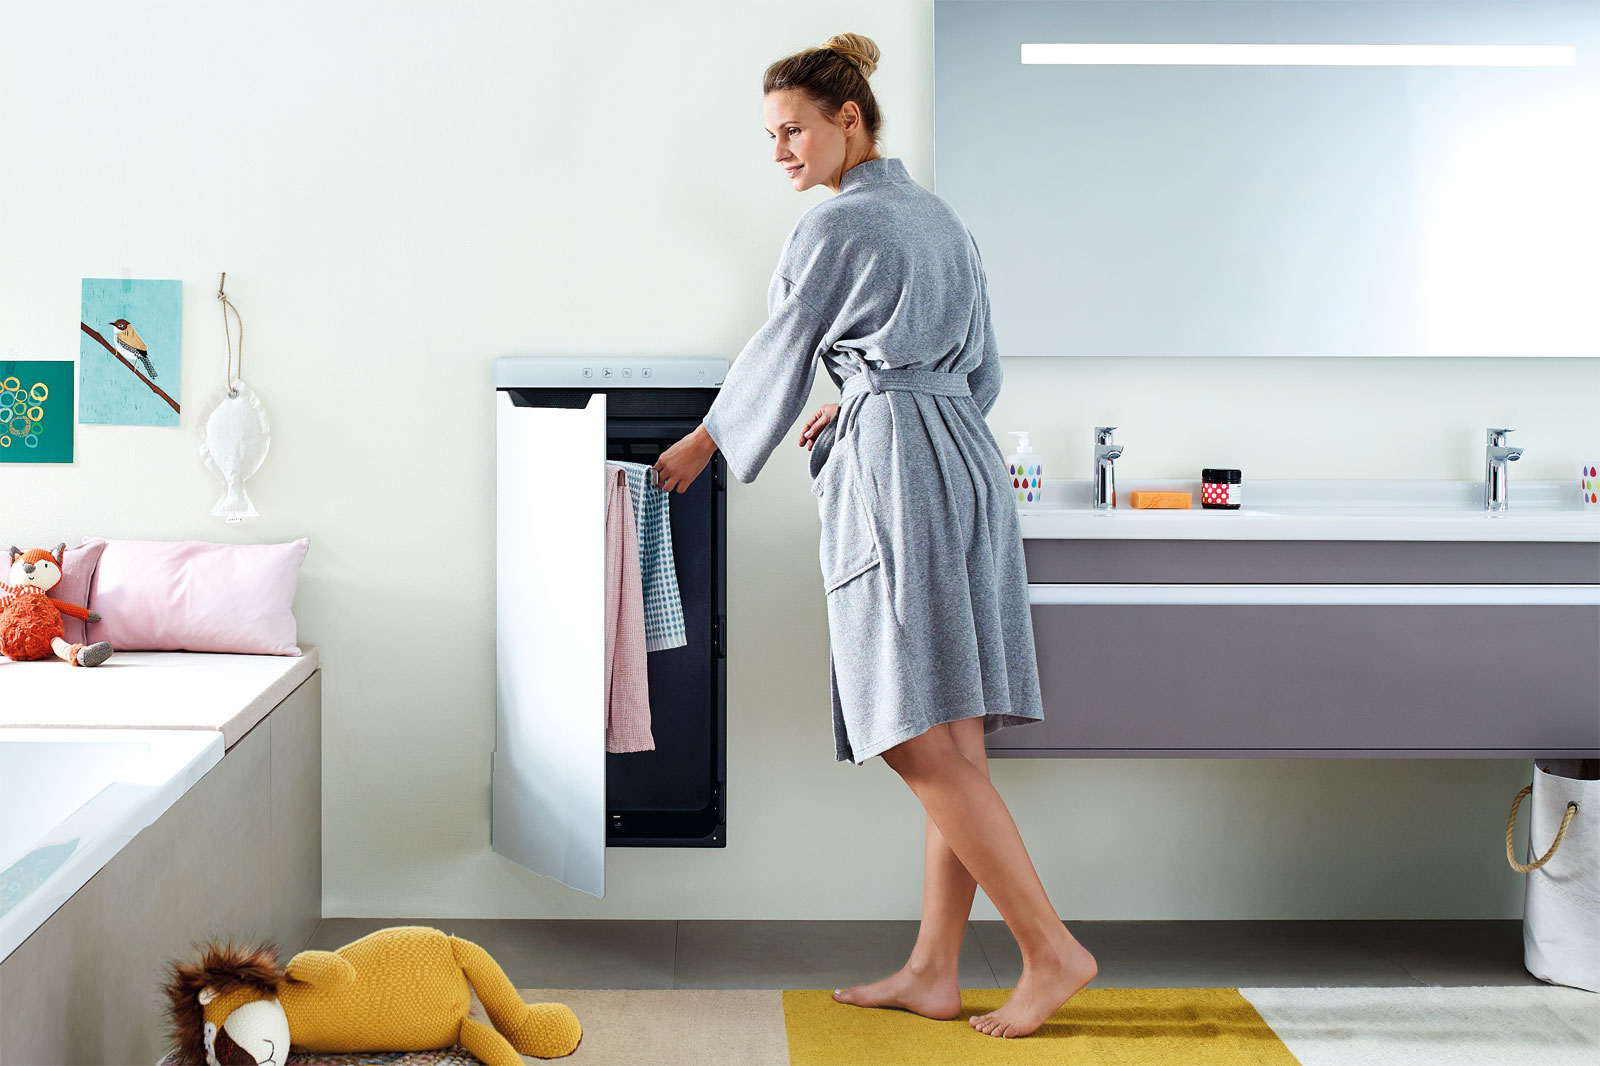 Zehnder design radiator Zenia for towels